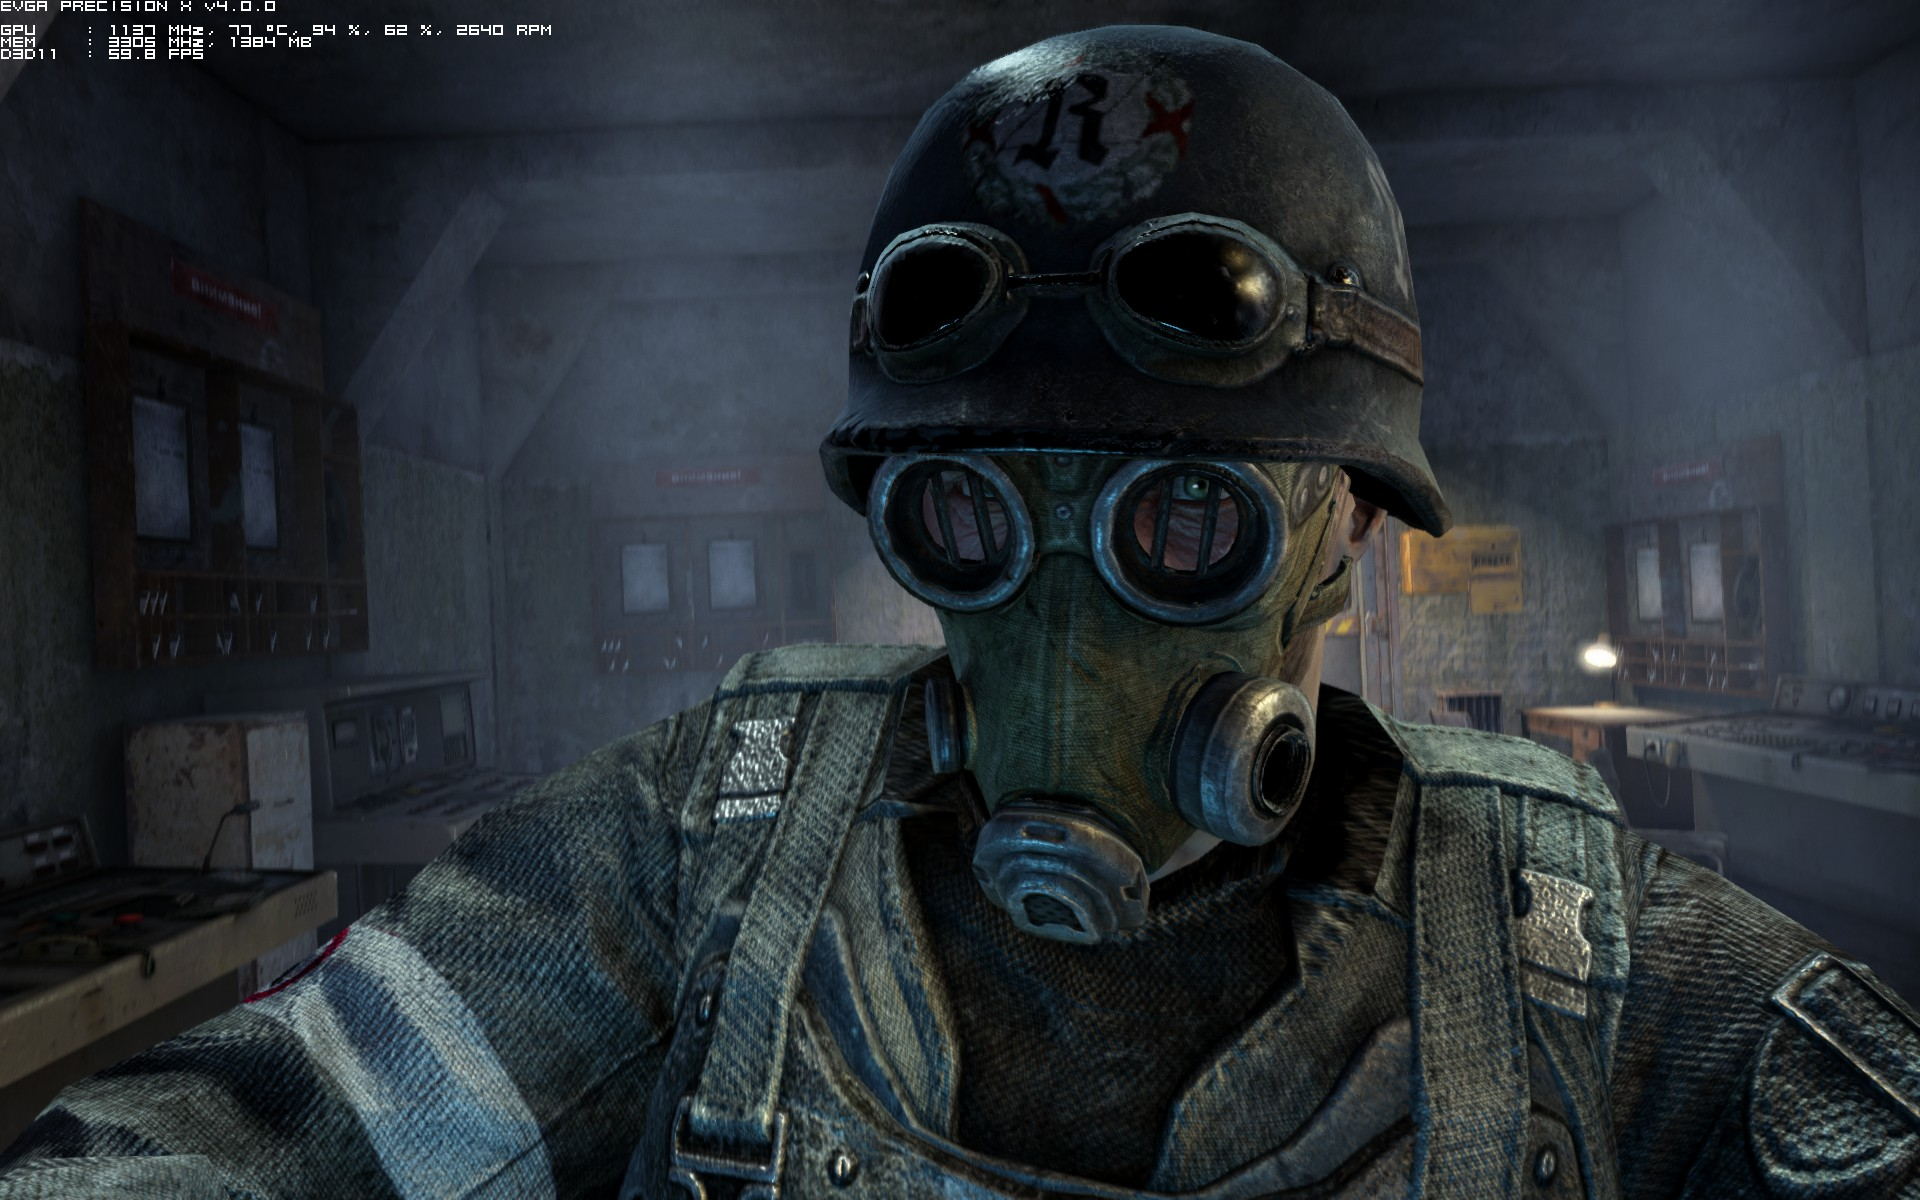 metro 2033 reich related - photo #7